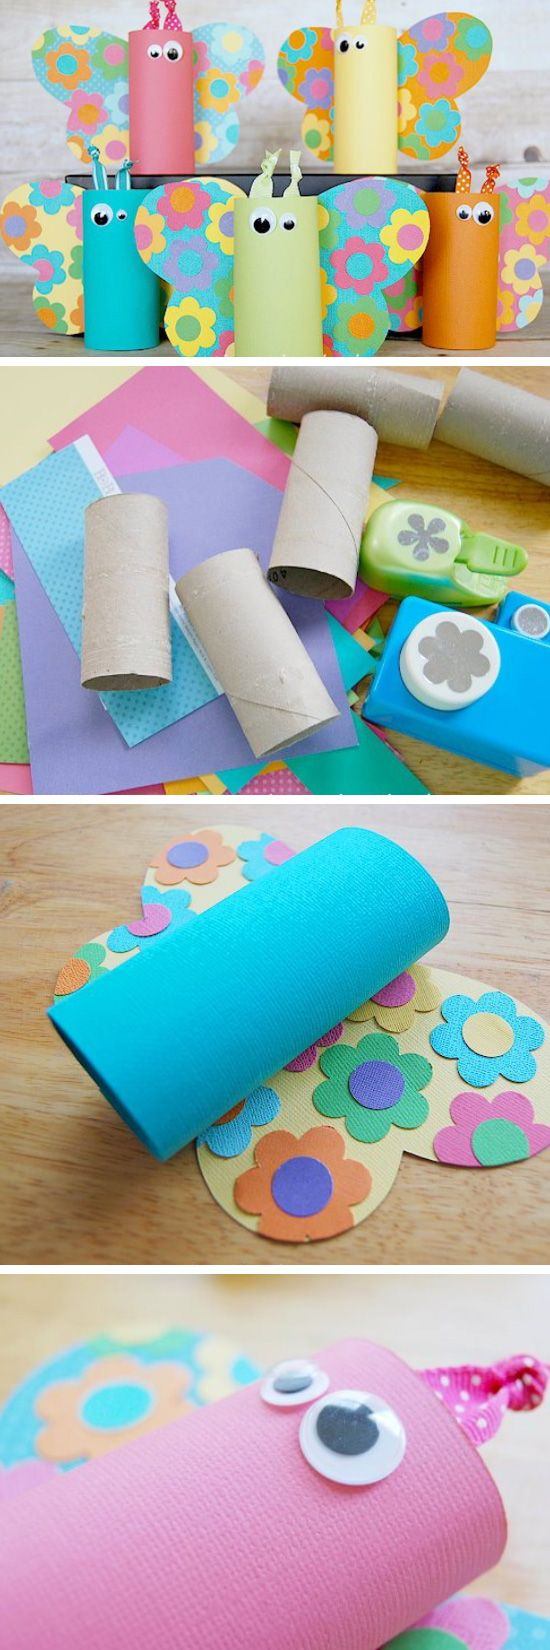 Easy DIY Projects 10